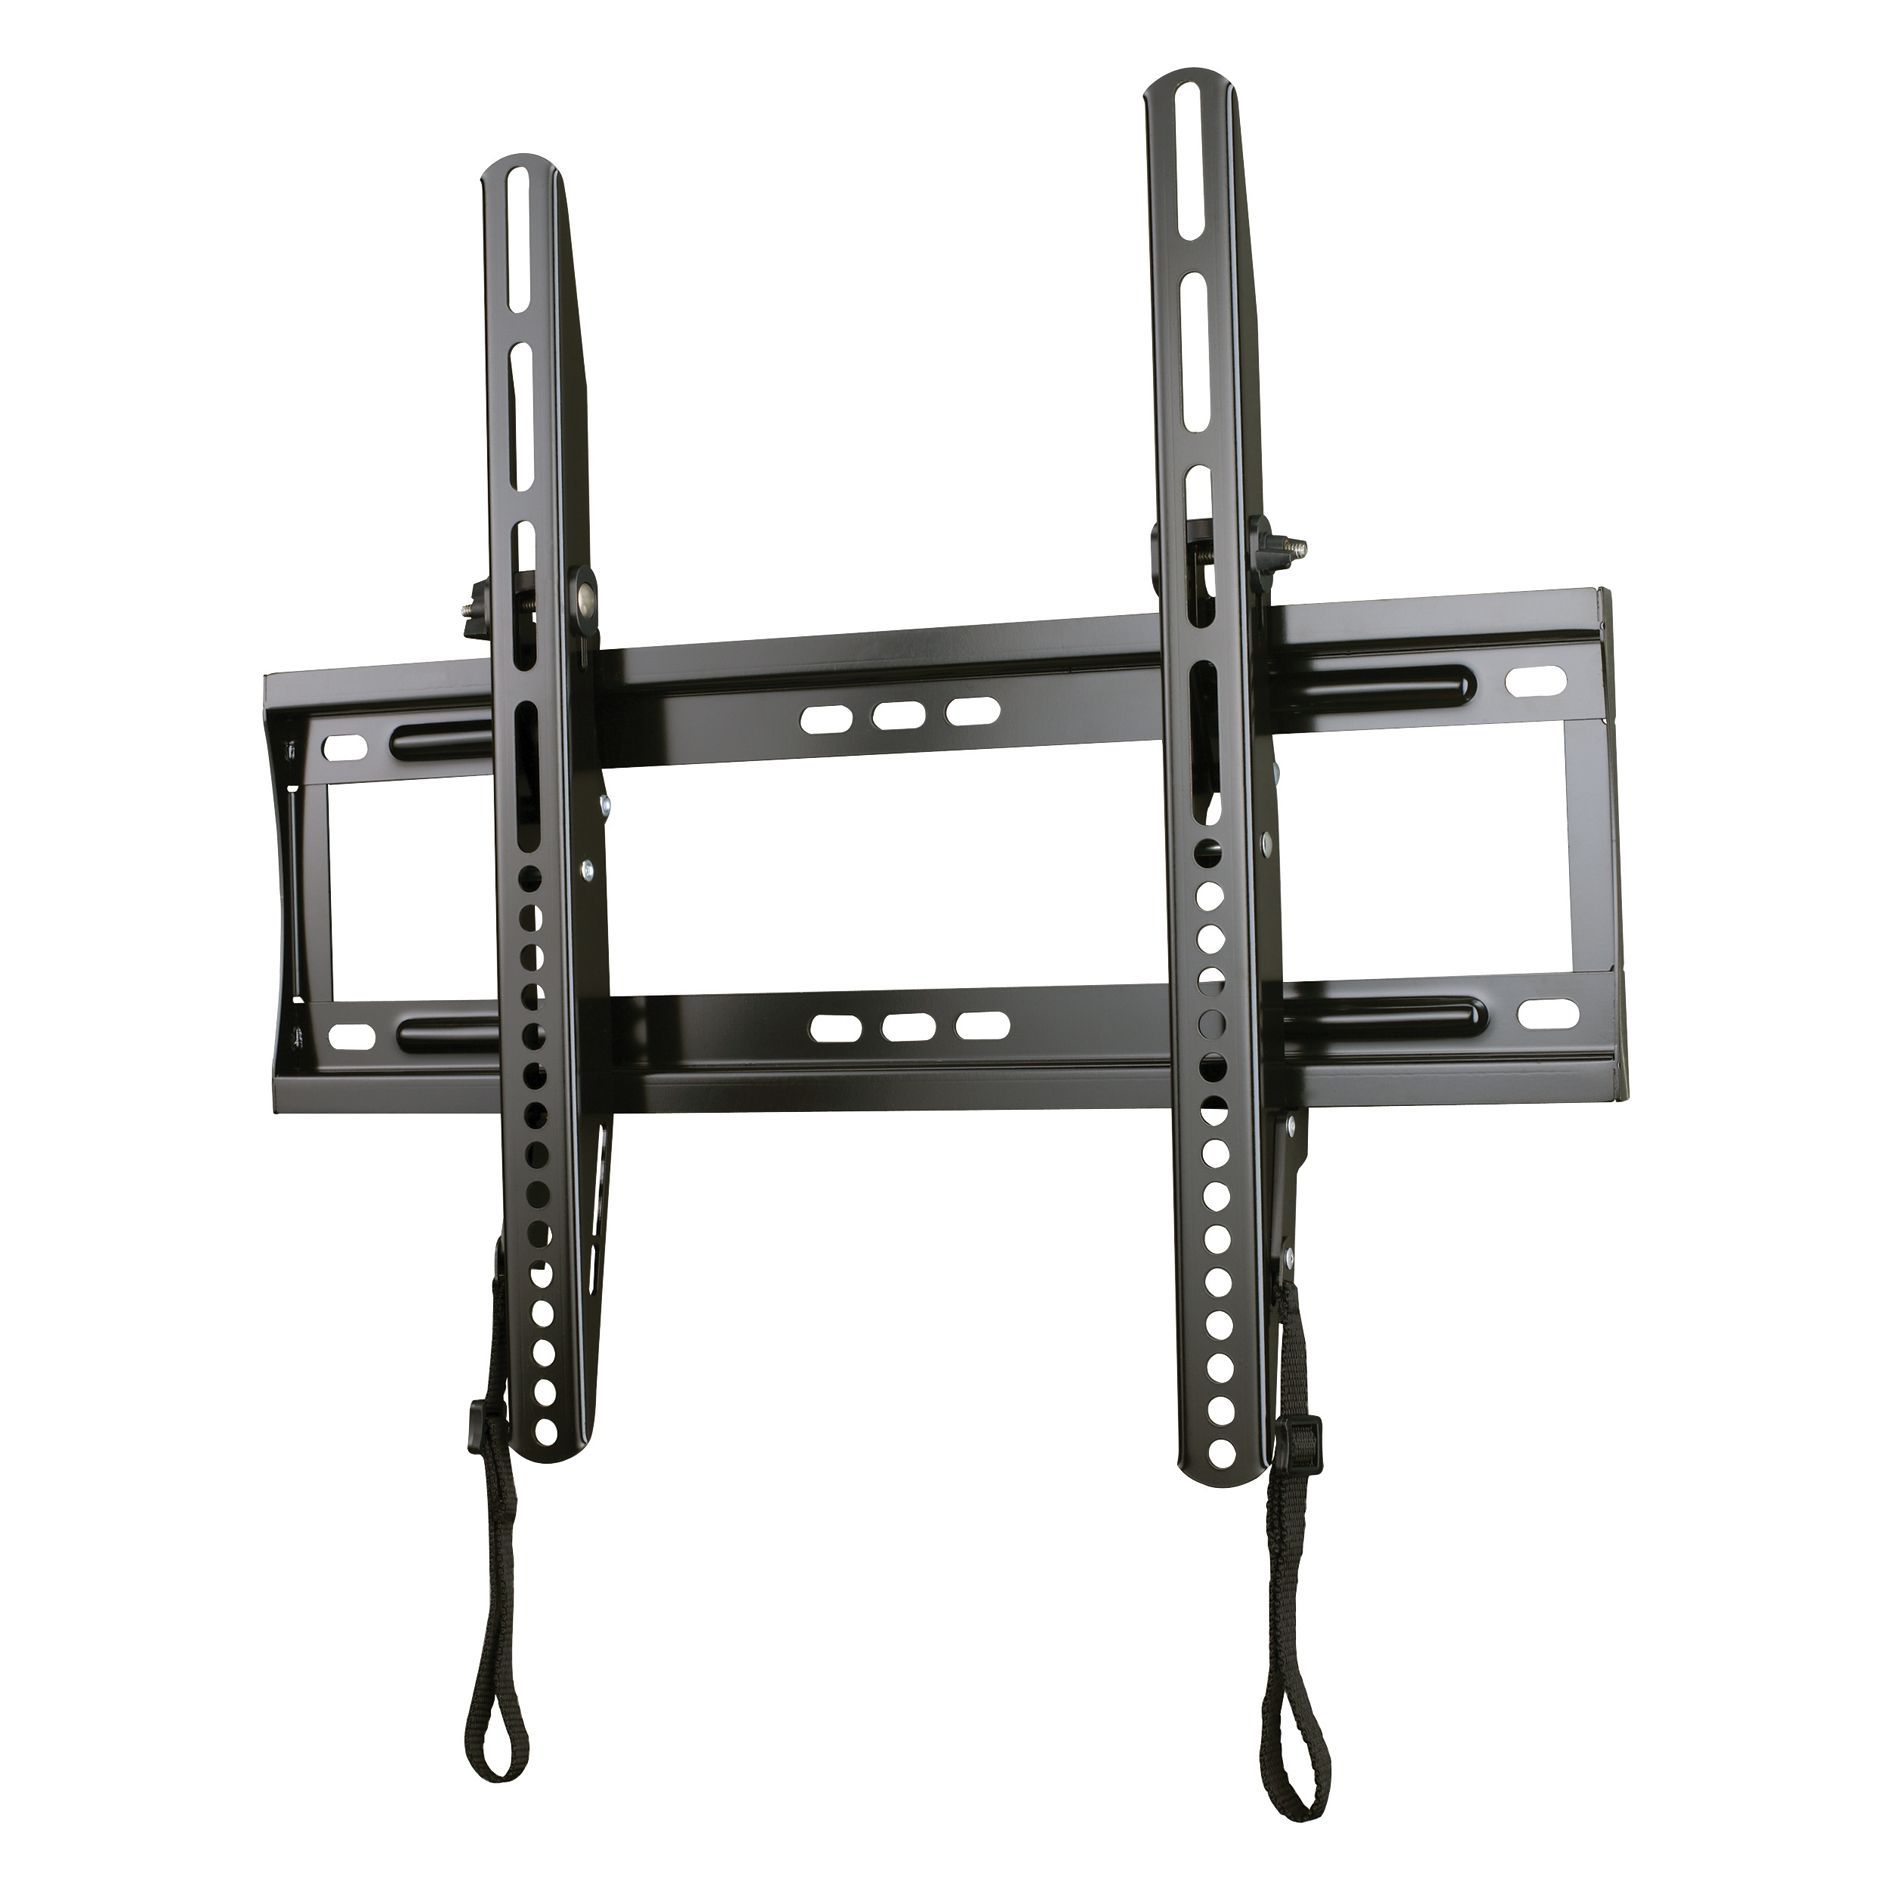 "Alphaline™ Medium Tilt Wall Mount for 26-47"" TVs ZMT15-B1"